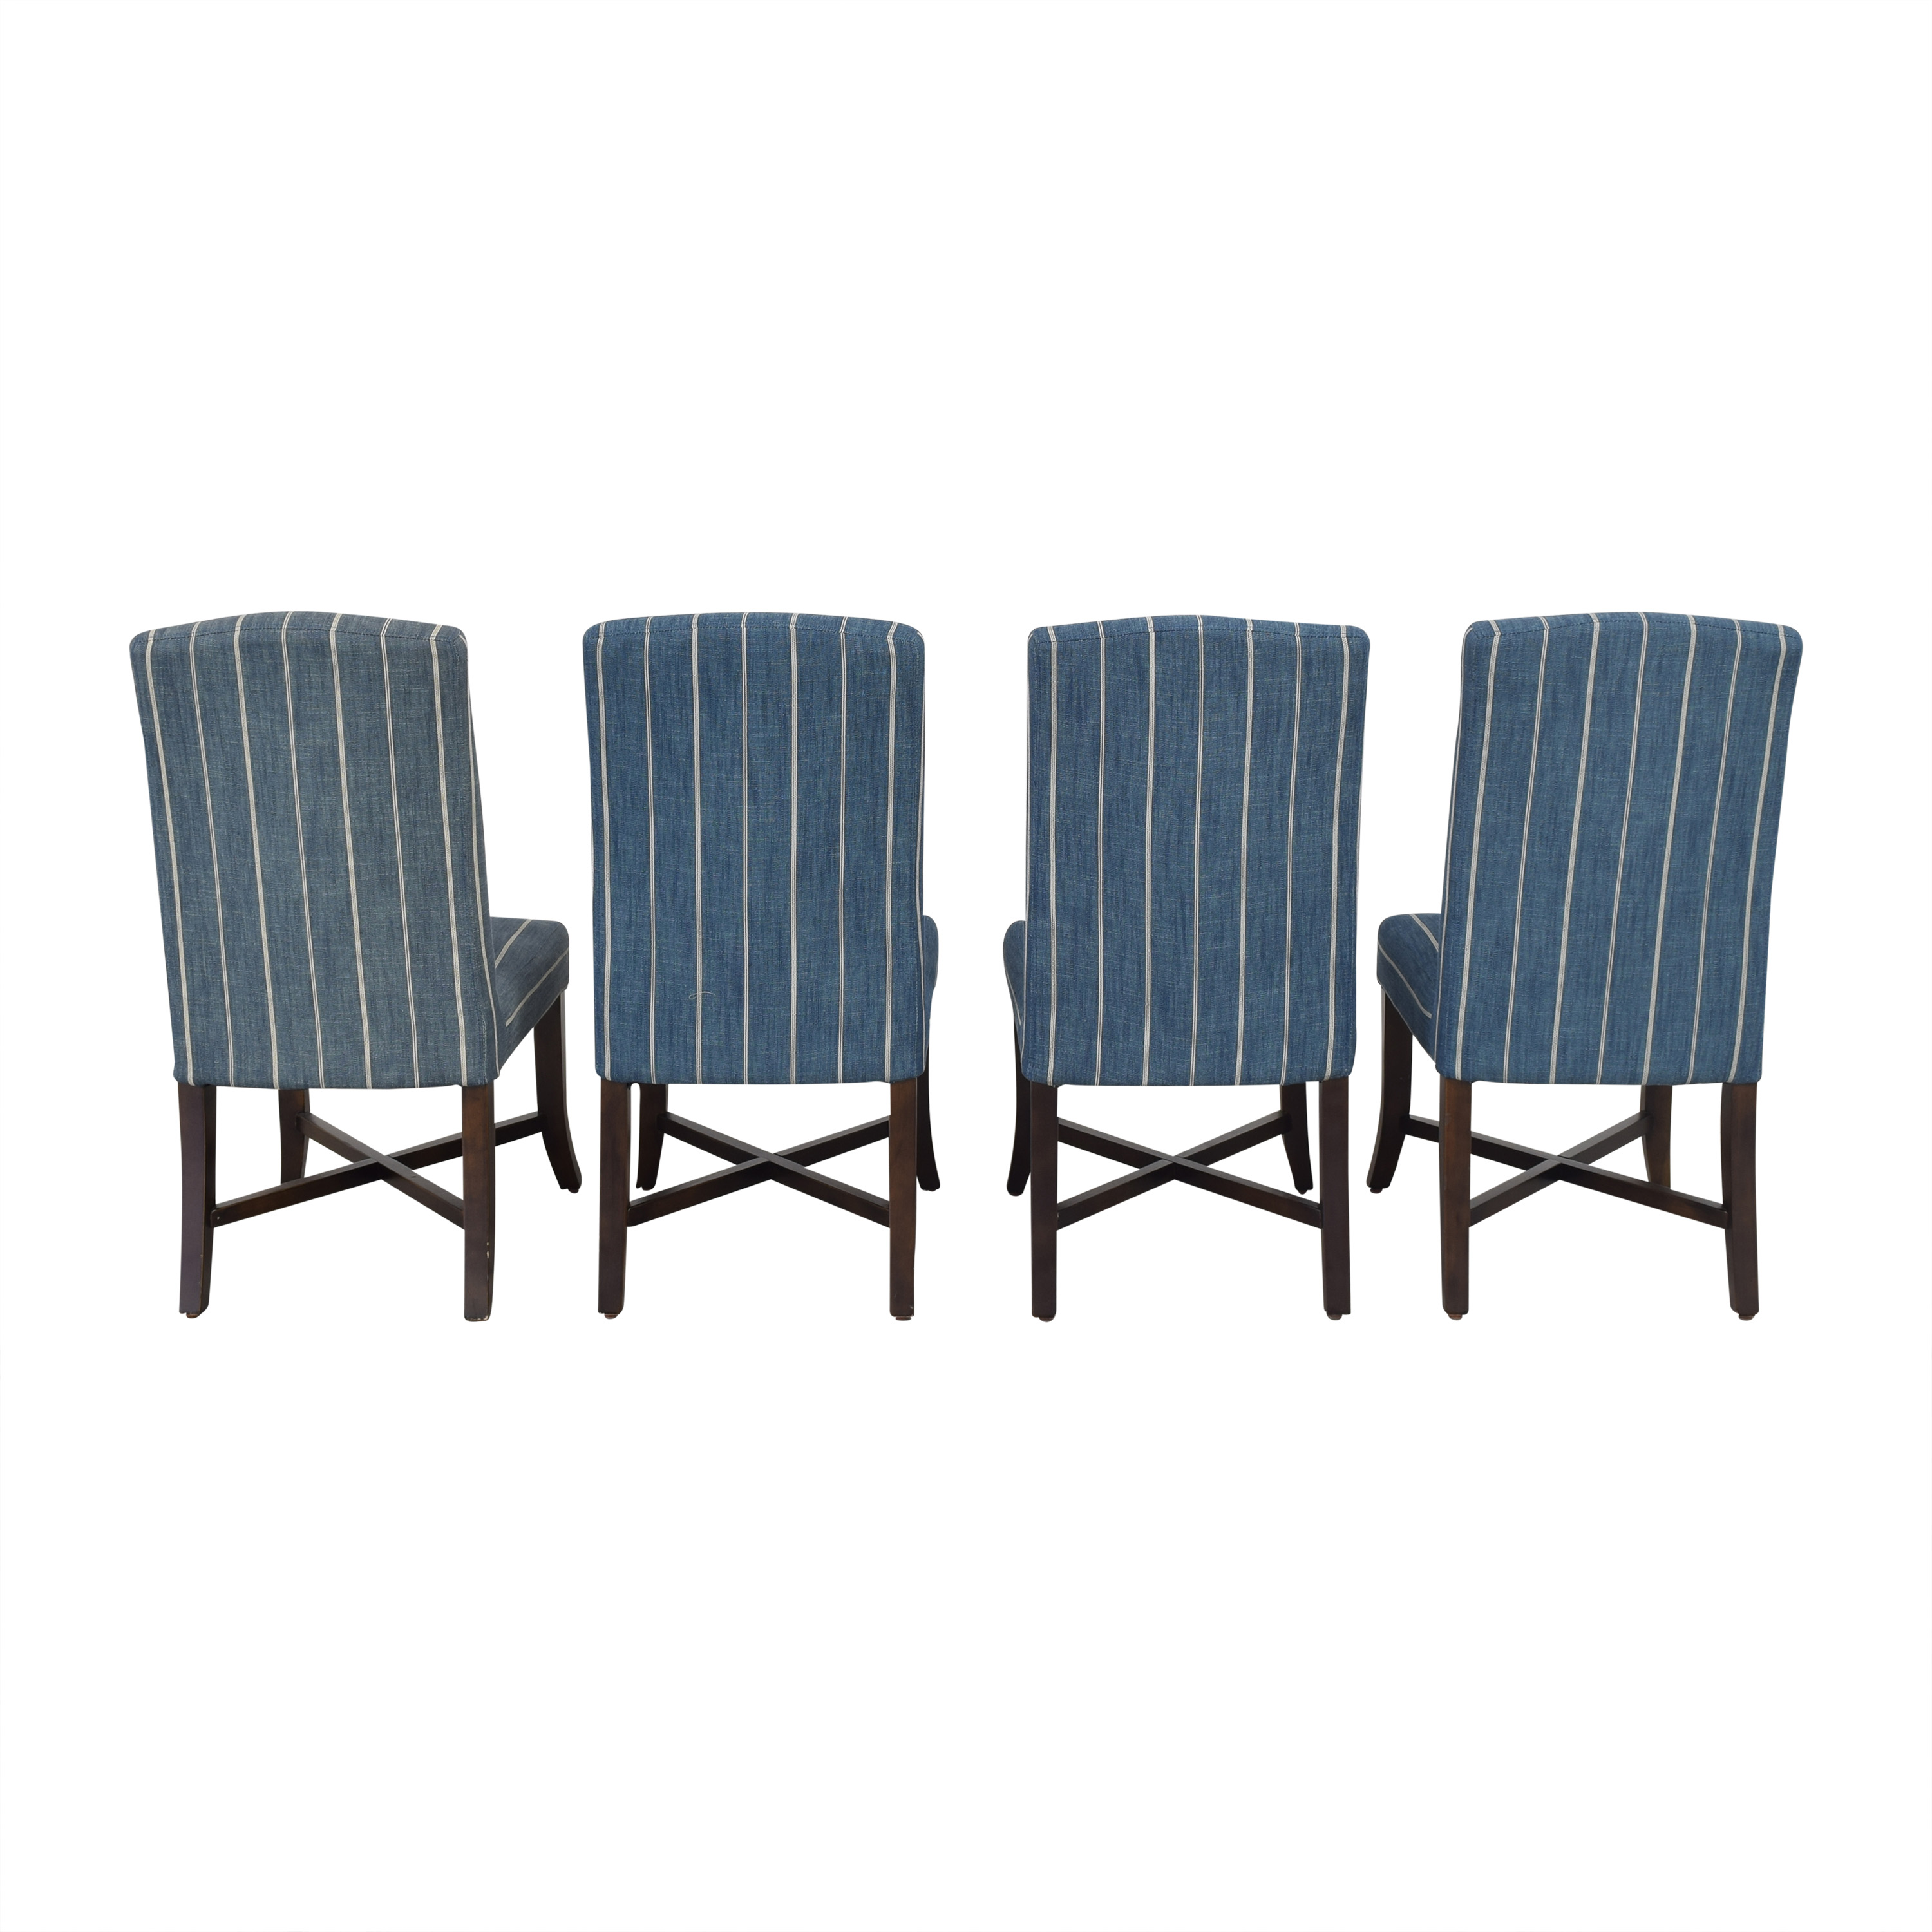 Alder & Tweed Mercer Dining Chairs / Chairs